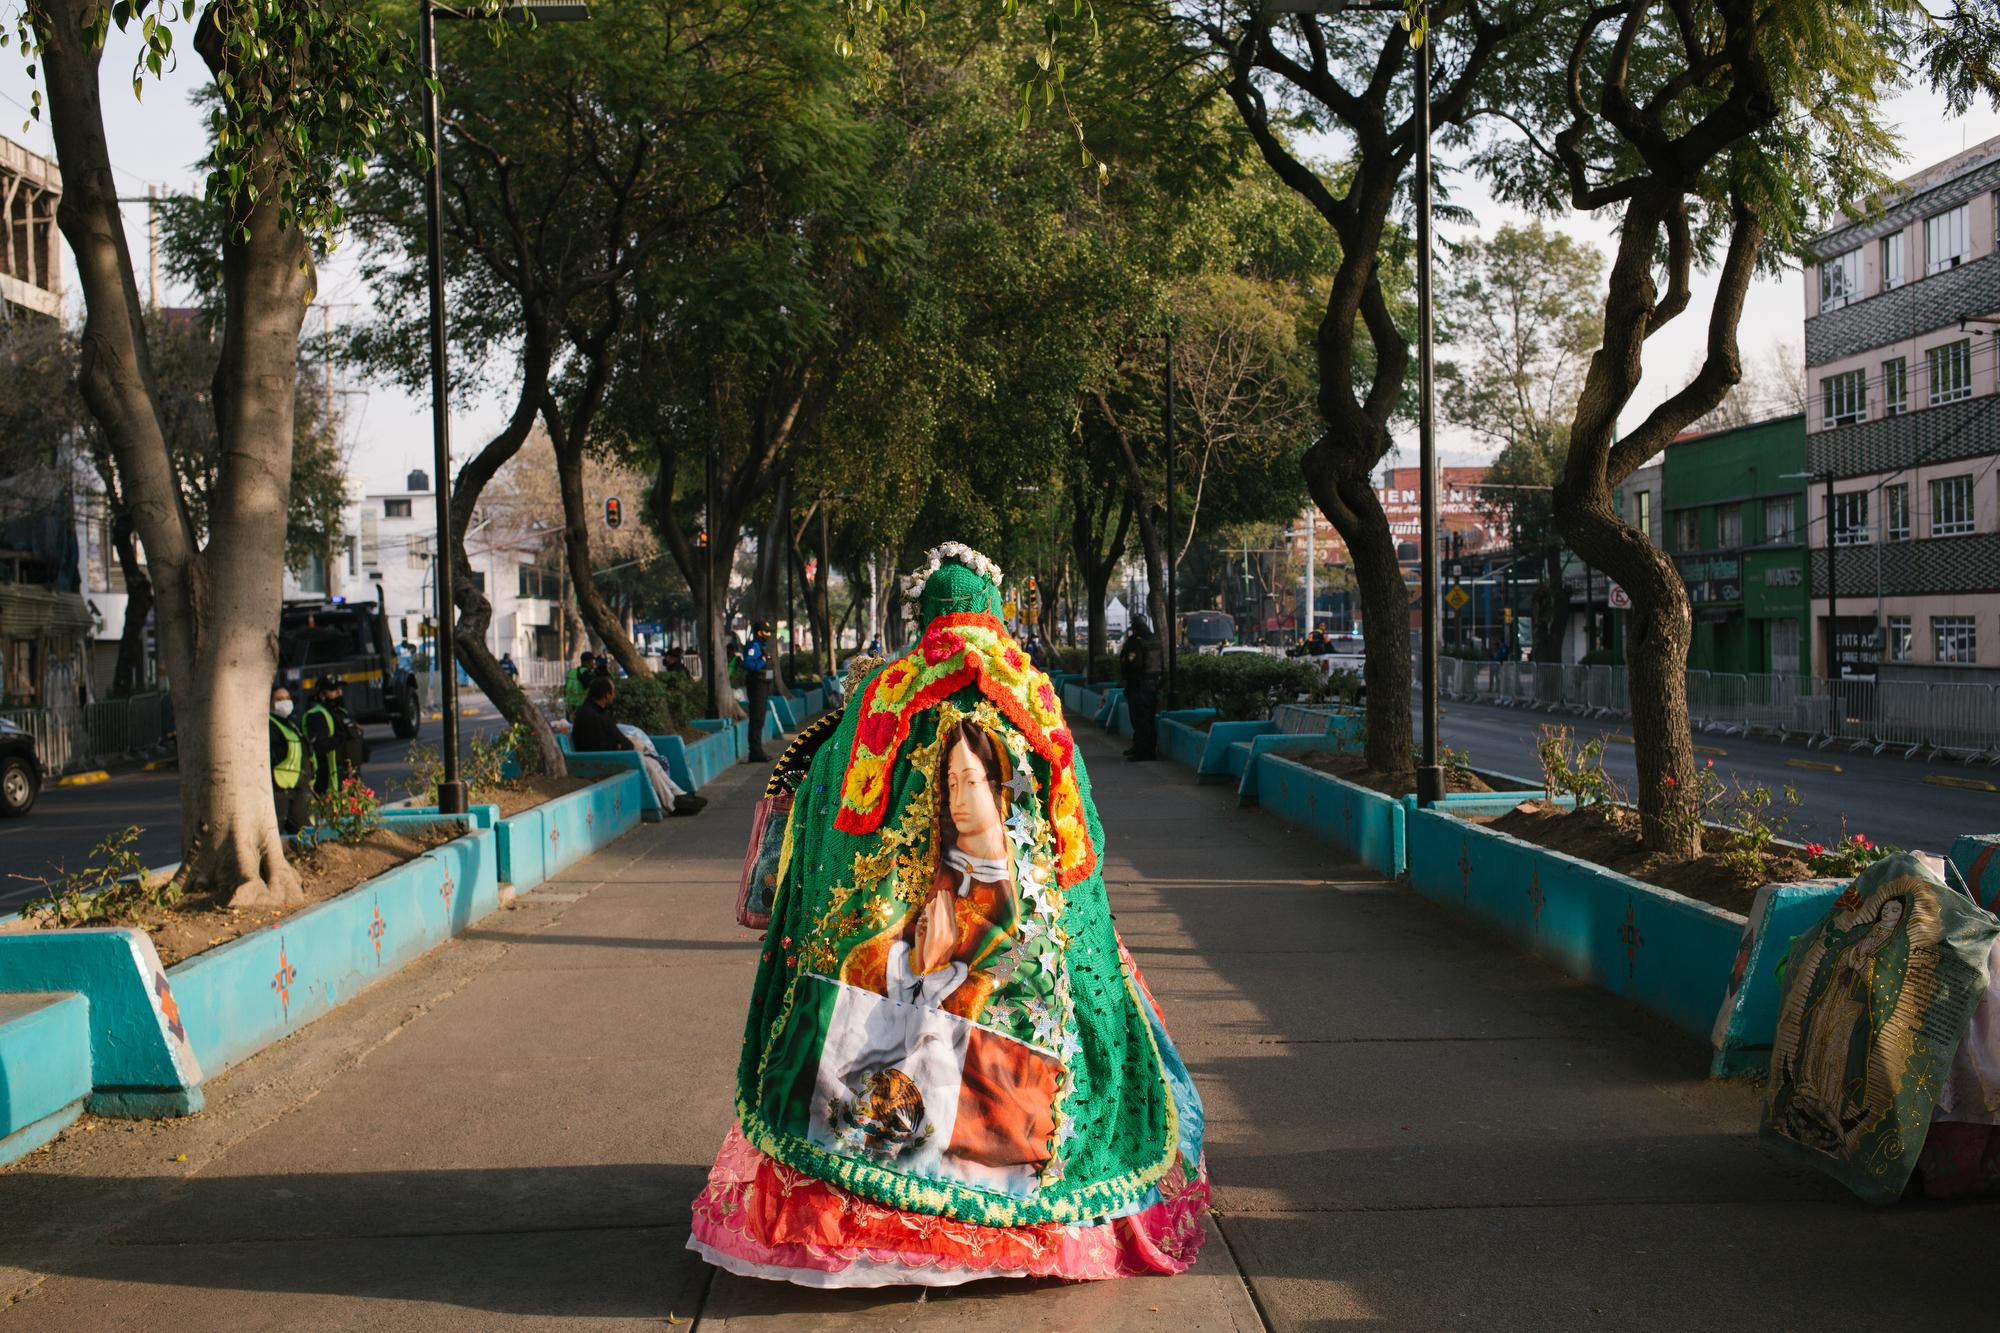 Ana Rita Ruedas Arana, 64, sings Las Mañanitas, the Mexican version of Happy Birthday, to the Virgin of Guadalupe on Feast Day on the street leading up to the Basilica of Our Lady of Guadalupe in Mexico City, Mexico. The basilica and surrounding streets are closed due to the COVID-19 pandemic.